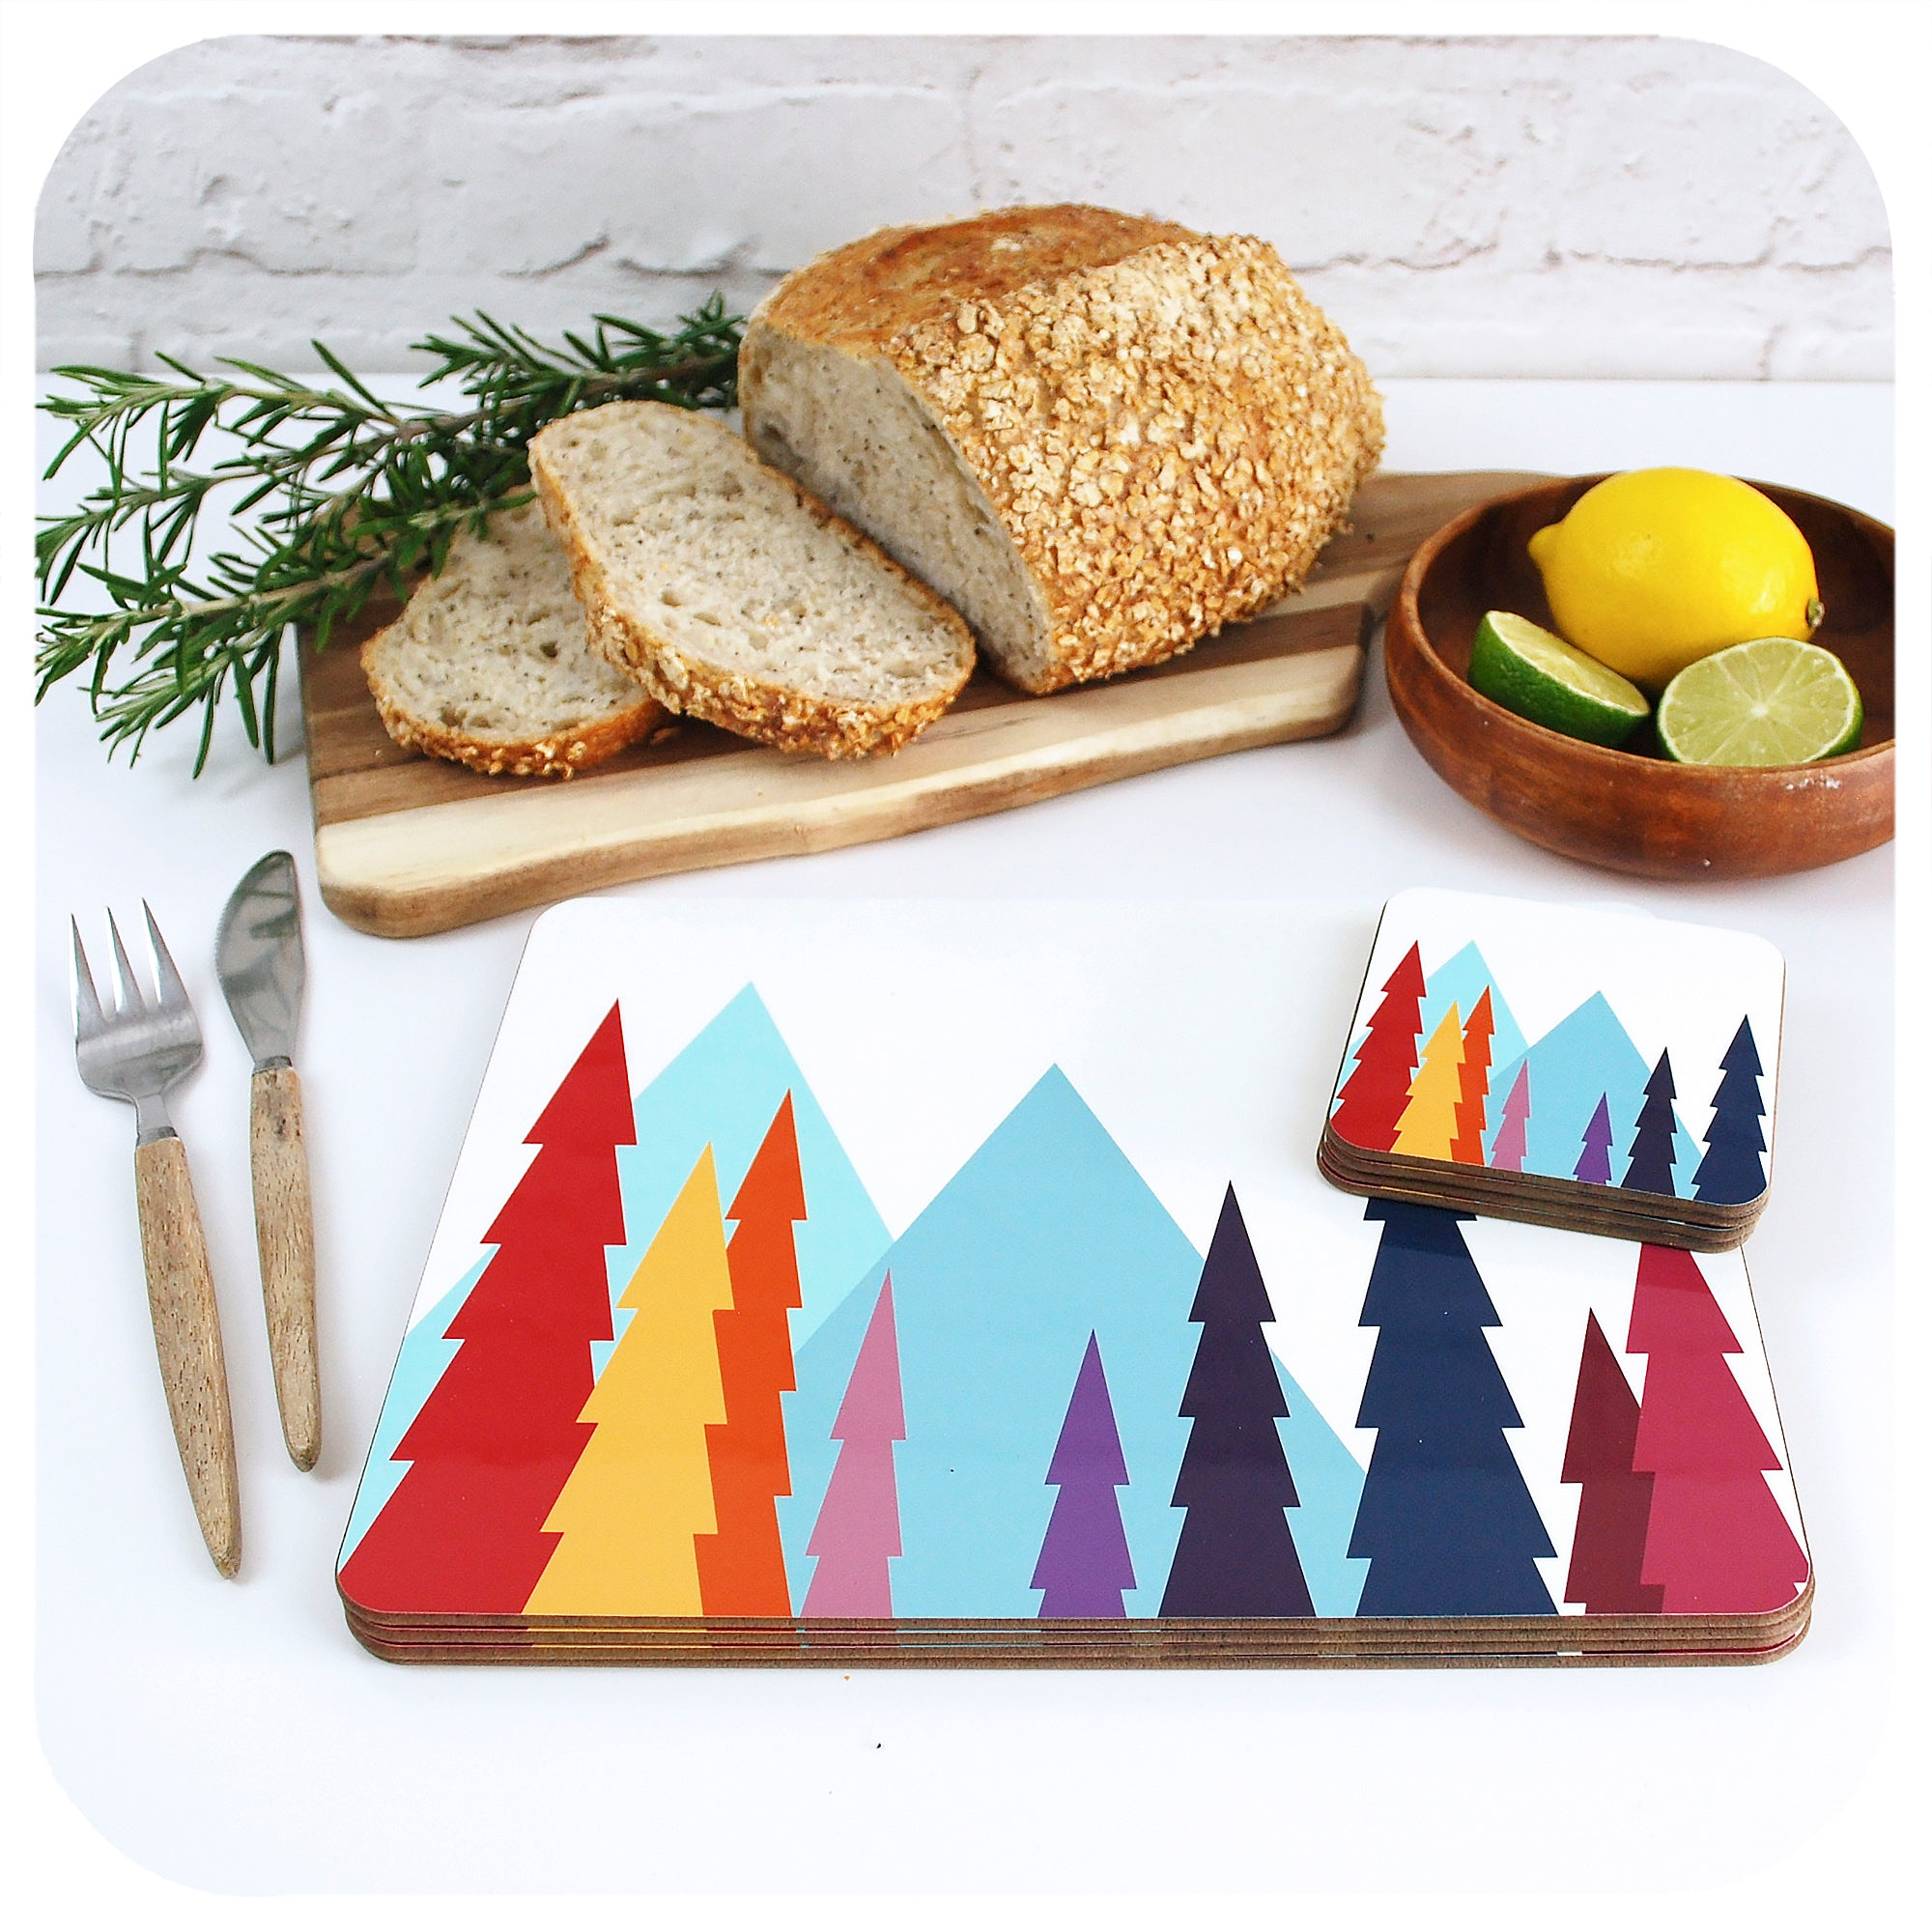 Nordic Trees Coasters and Placemats, Scandi style Tableware | The Inkabilly Emporium